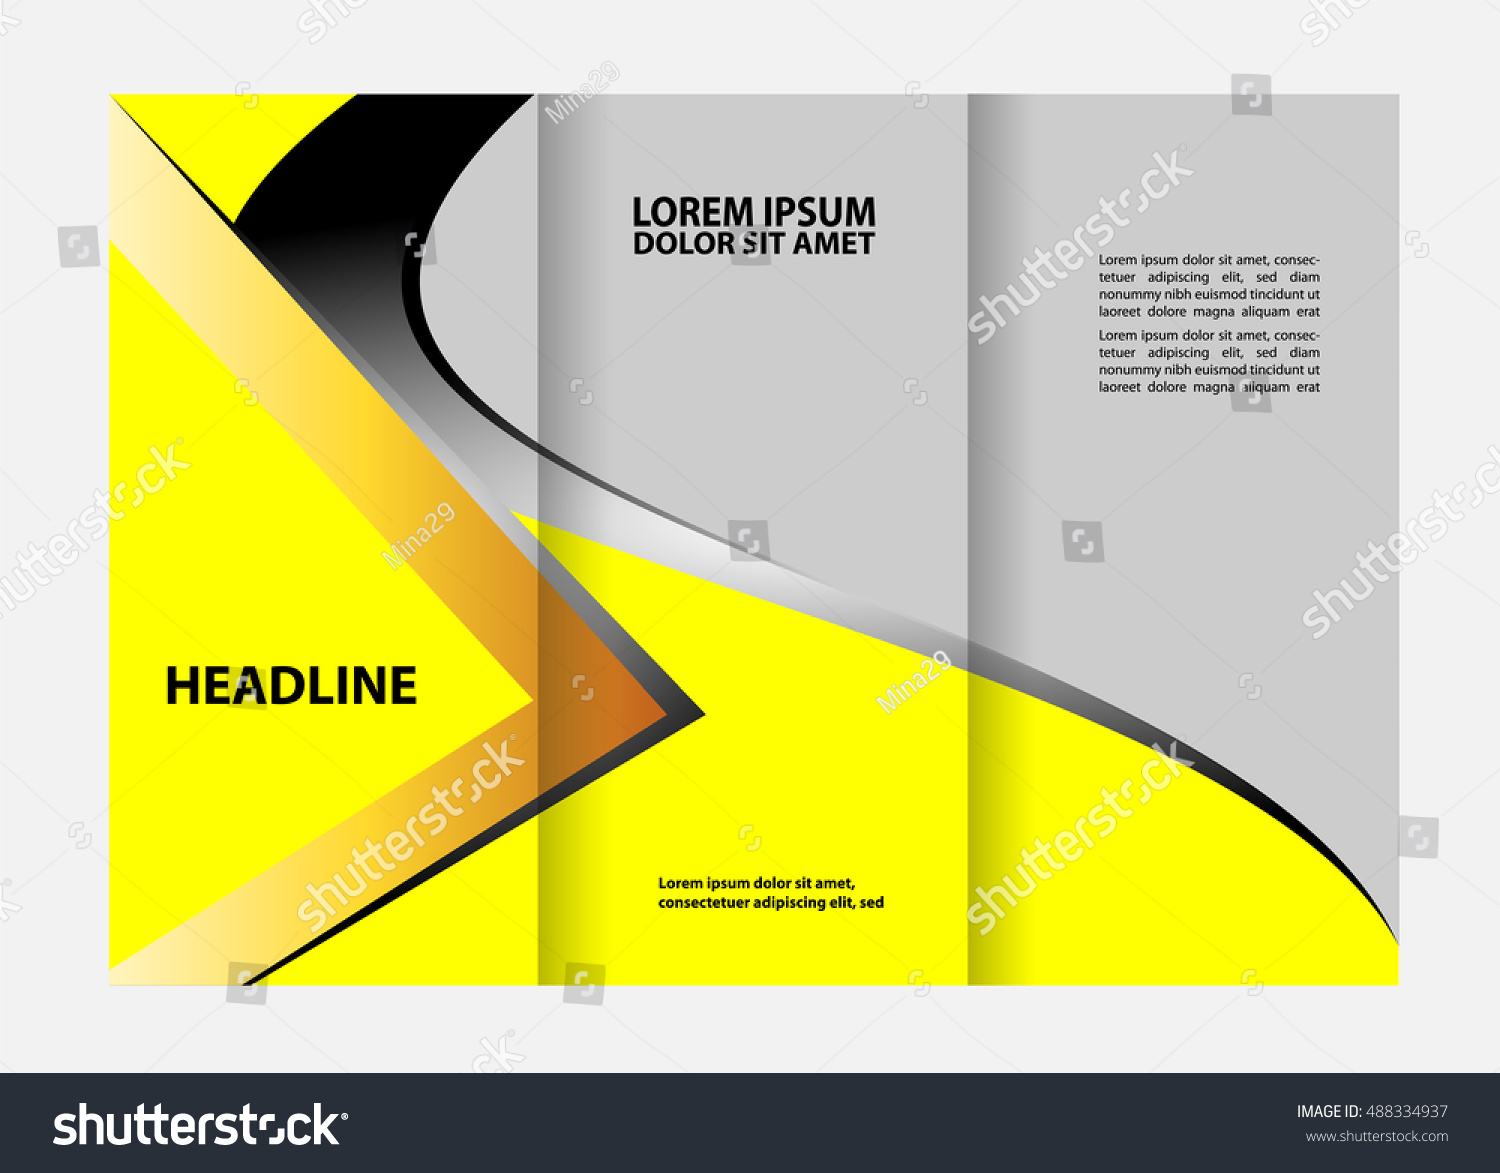 brochure design template vector trifold abstract のベクター画像素材